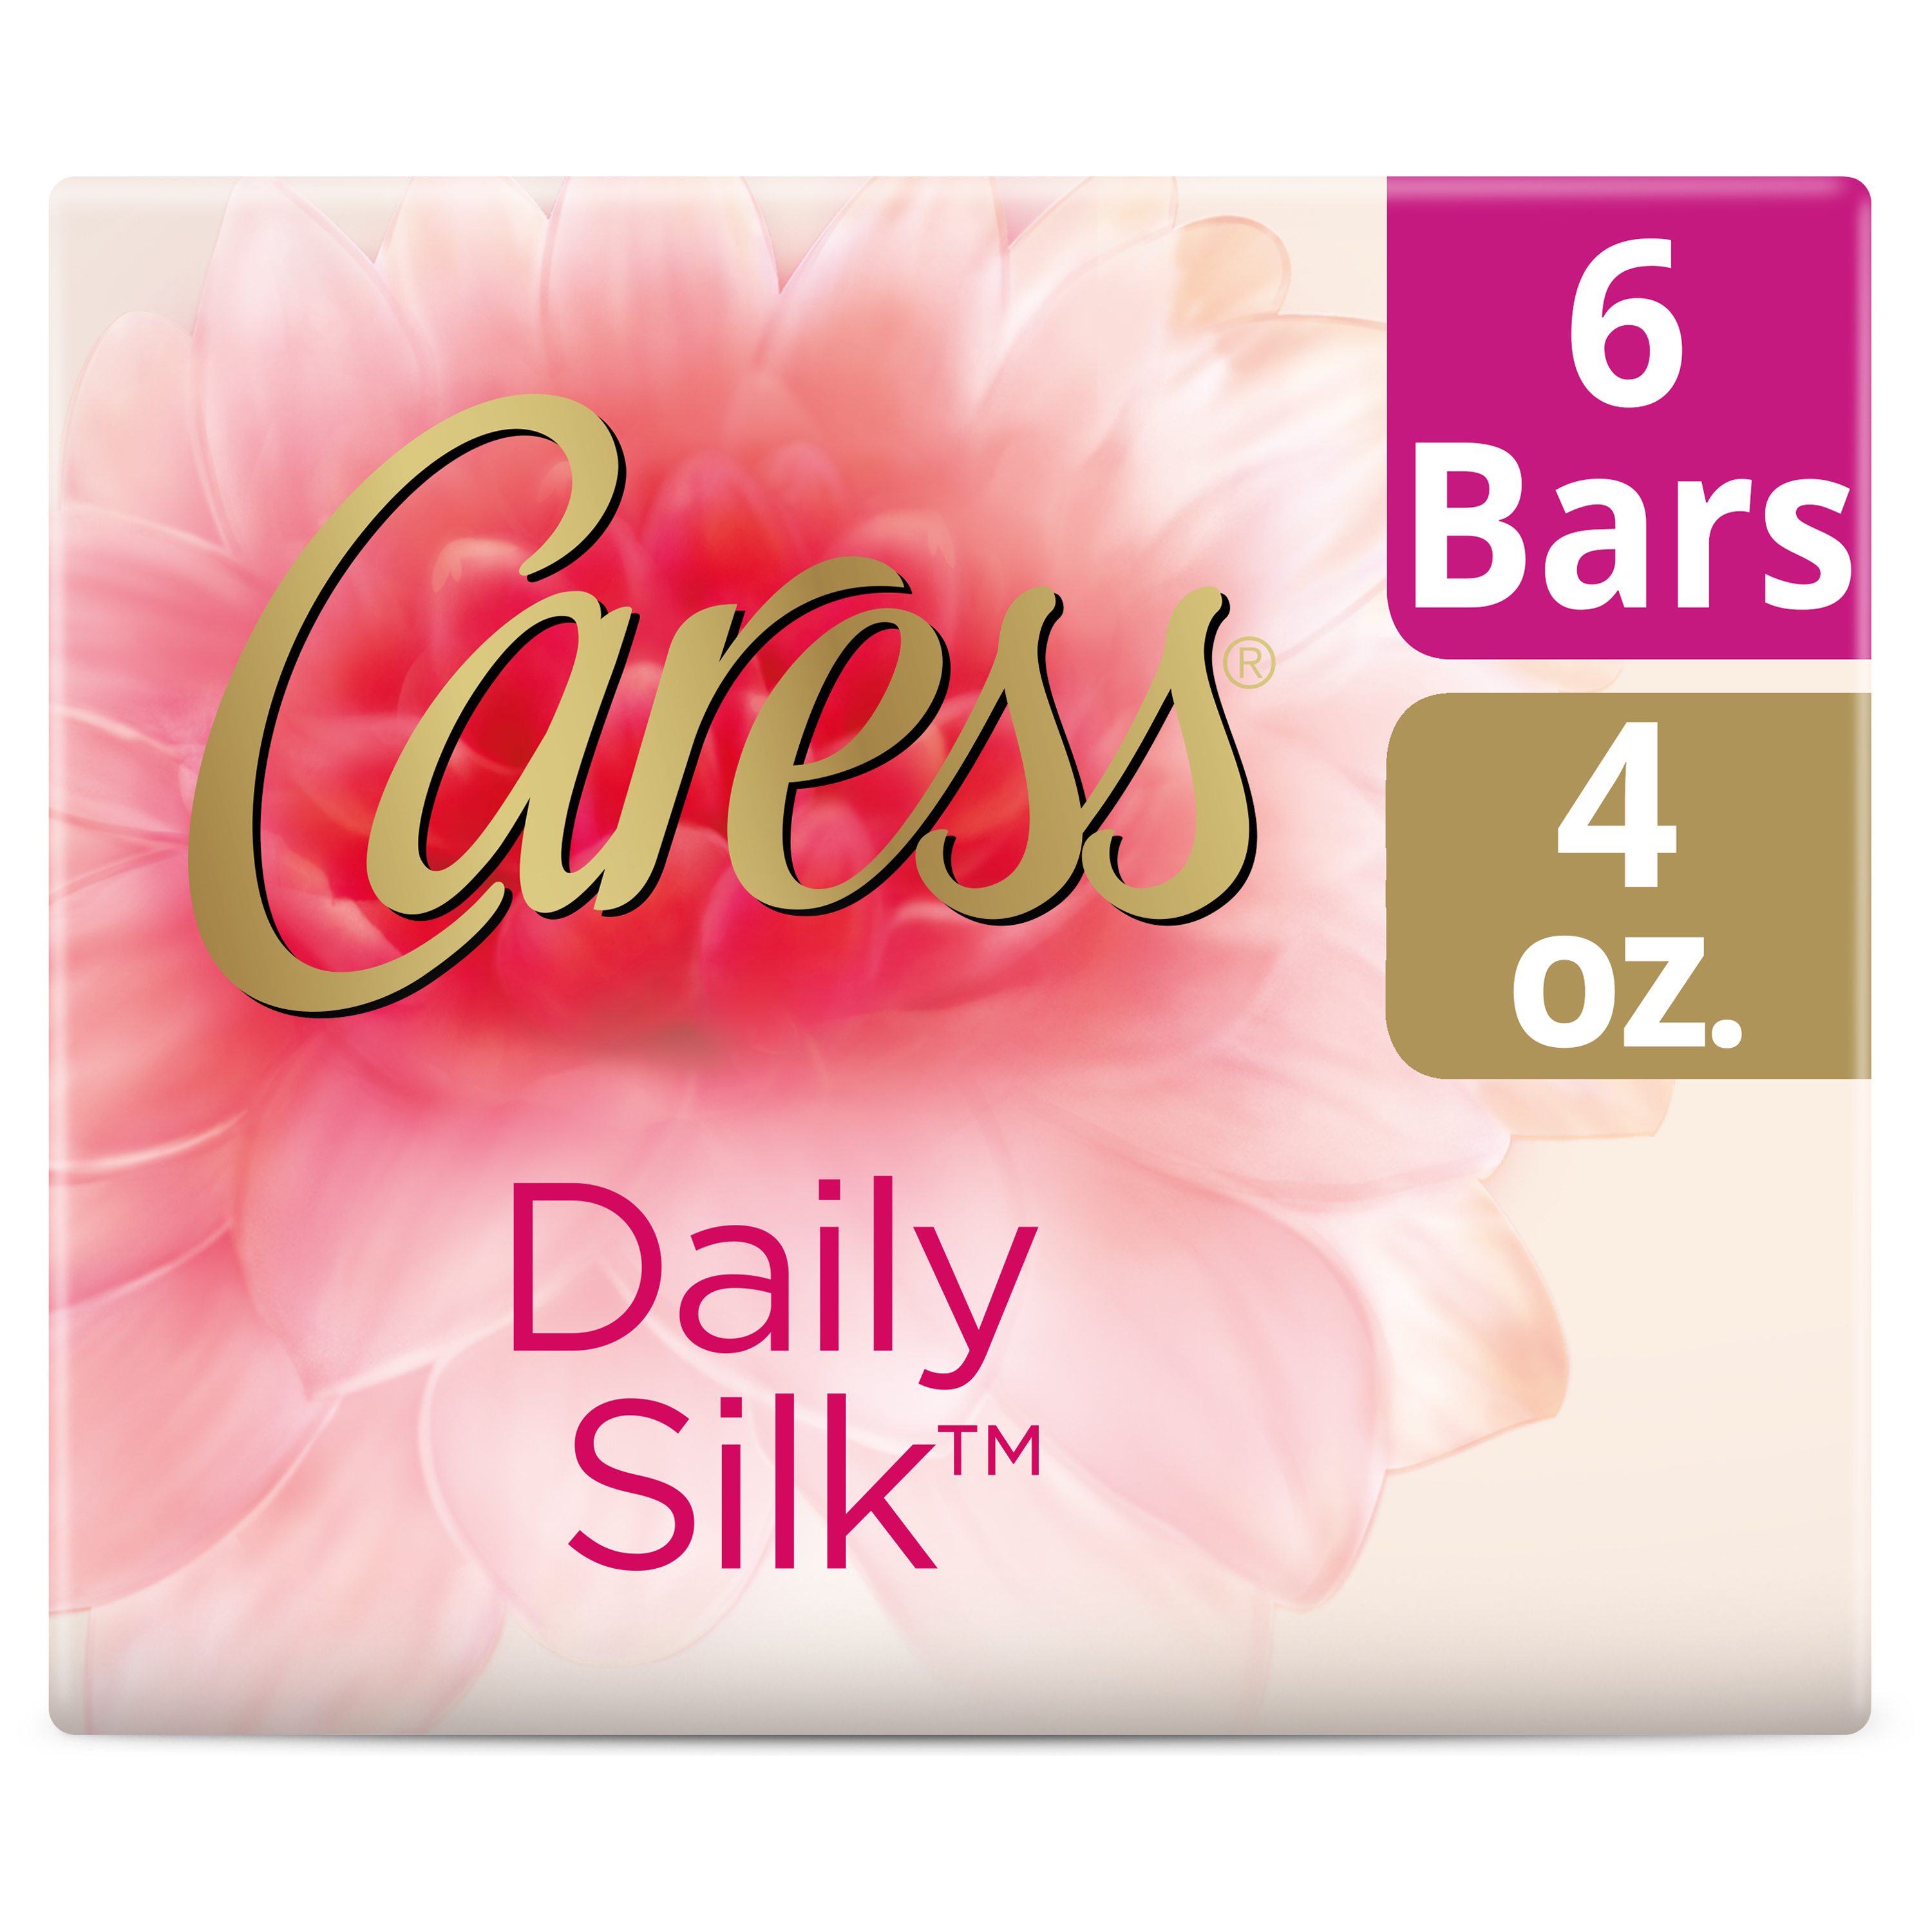 Caress Daily Silk Beauty Bar, 4 oz, 6 Bar